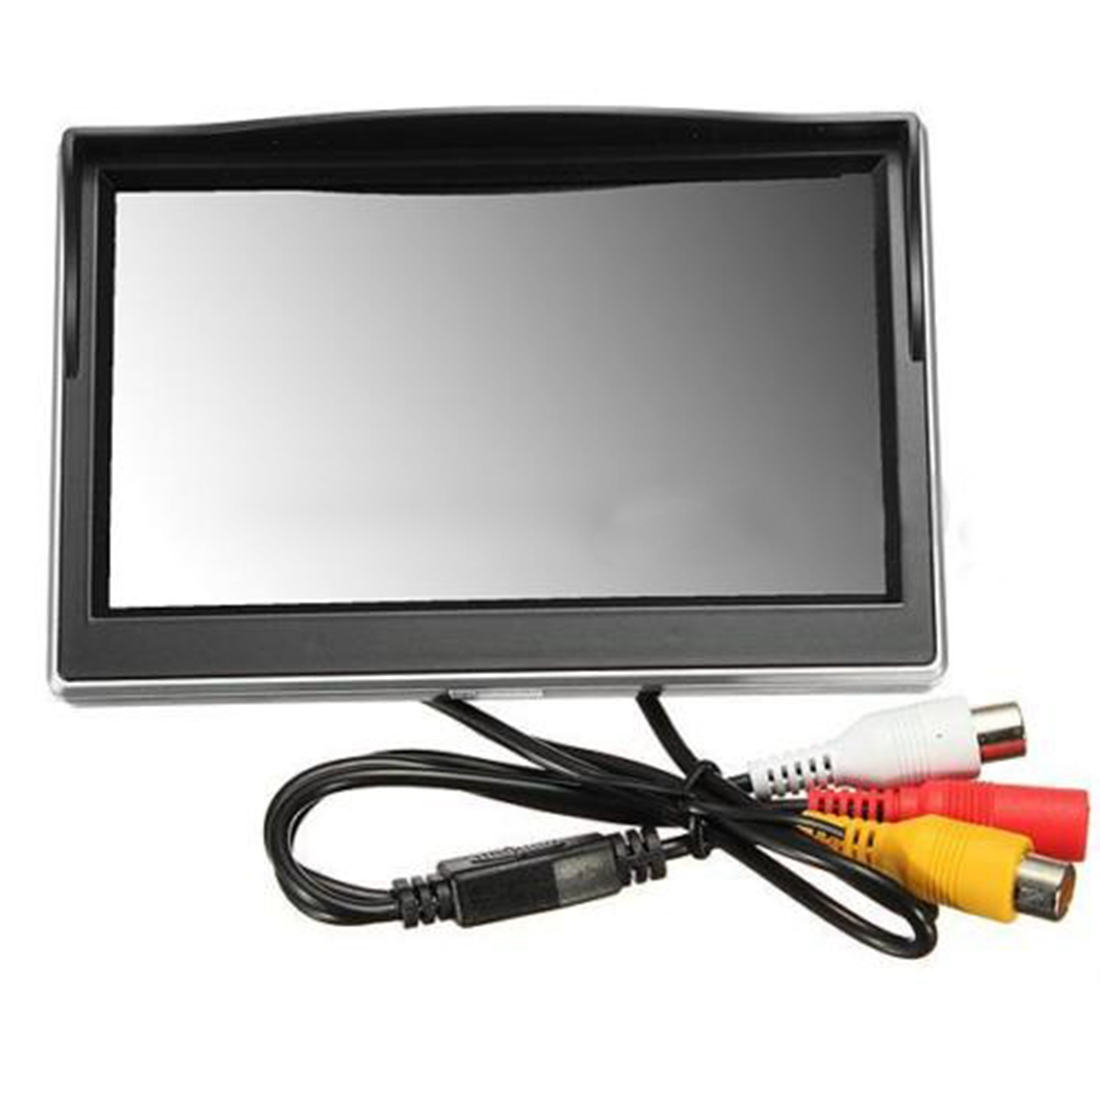 New 5 800 480 TFT LCD HD Screen Monitor for Car Rear Rearview Backup font b